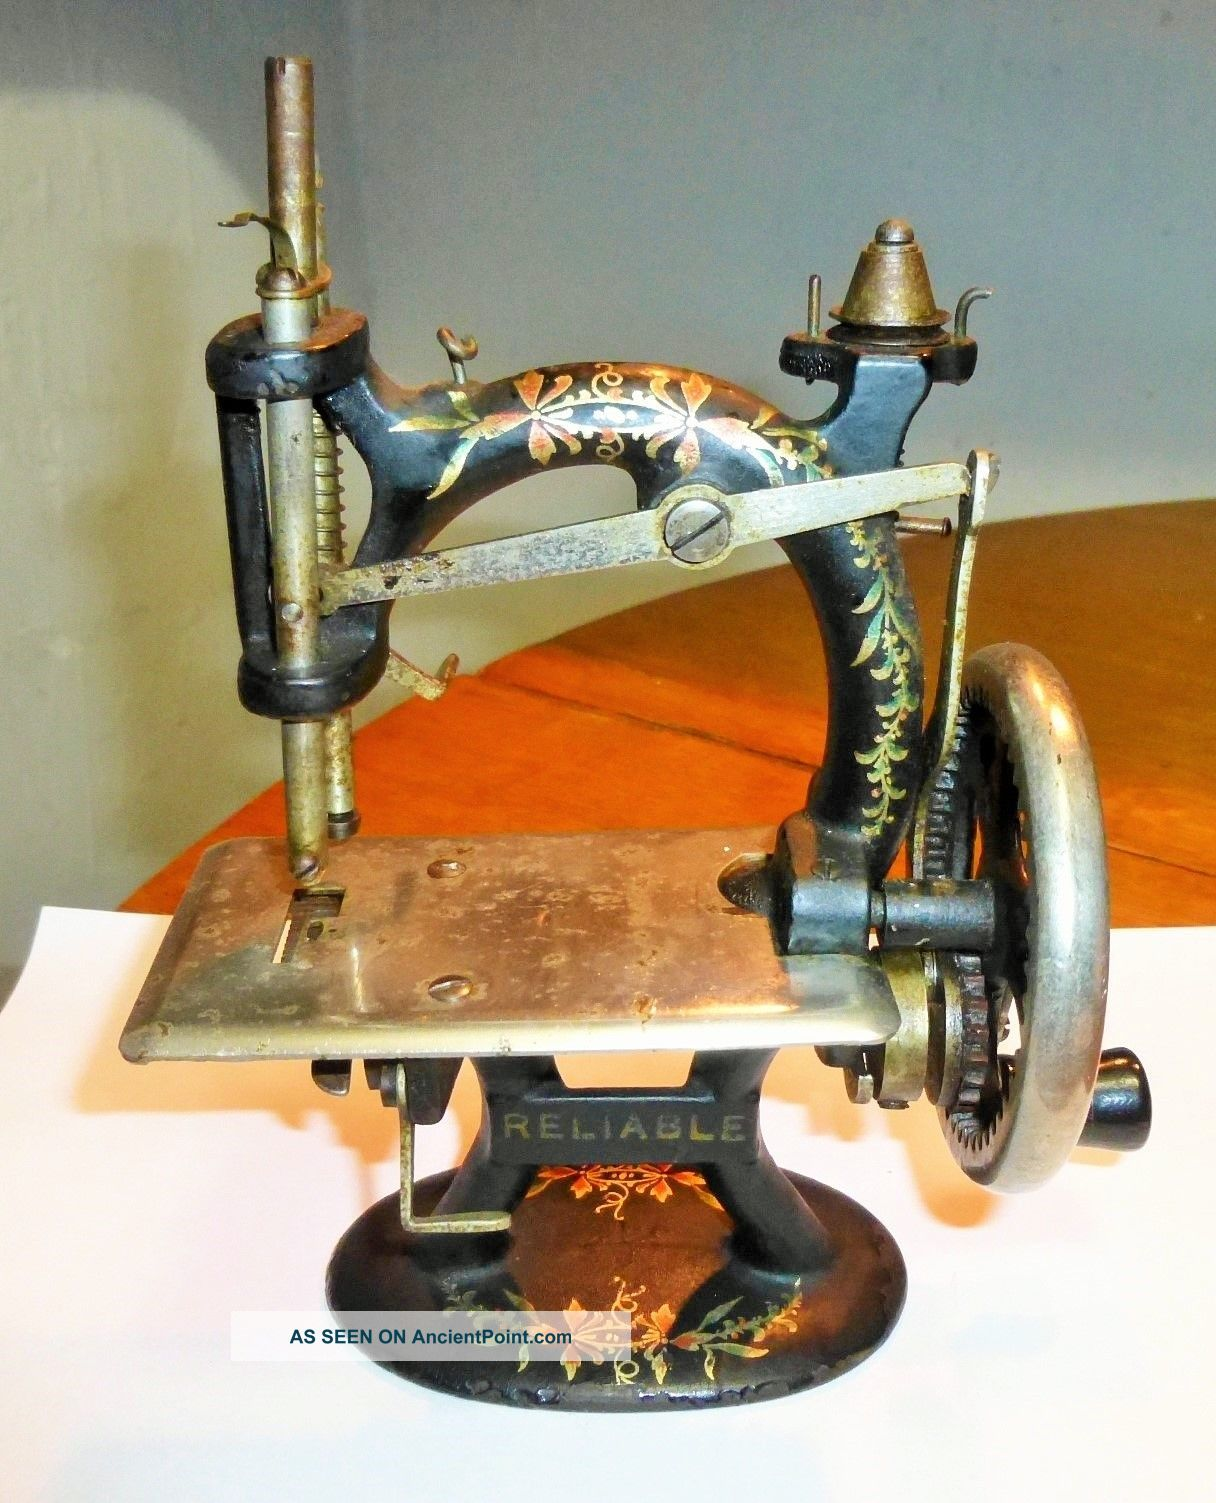 Vintage Foley & Williams Reliable Miniature Toy Hand Sewing Machine - Ex Cond Sewing Machines photo